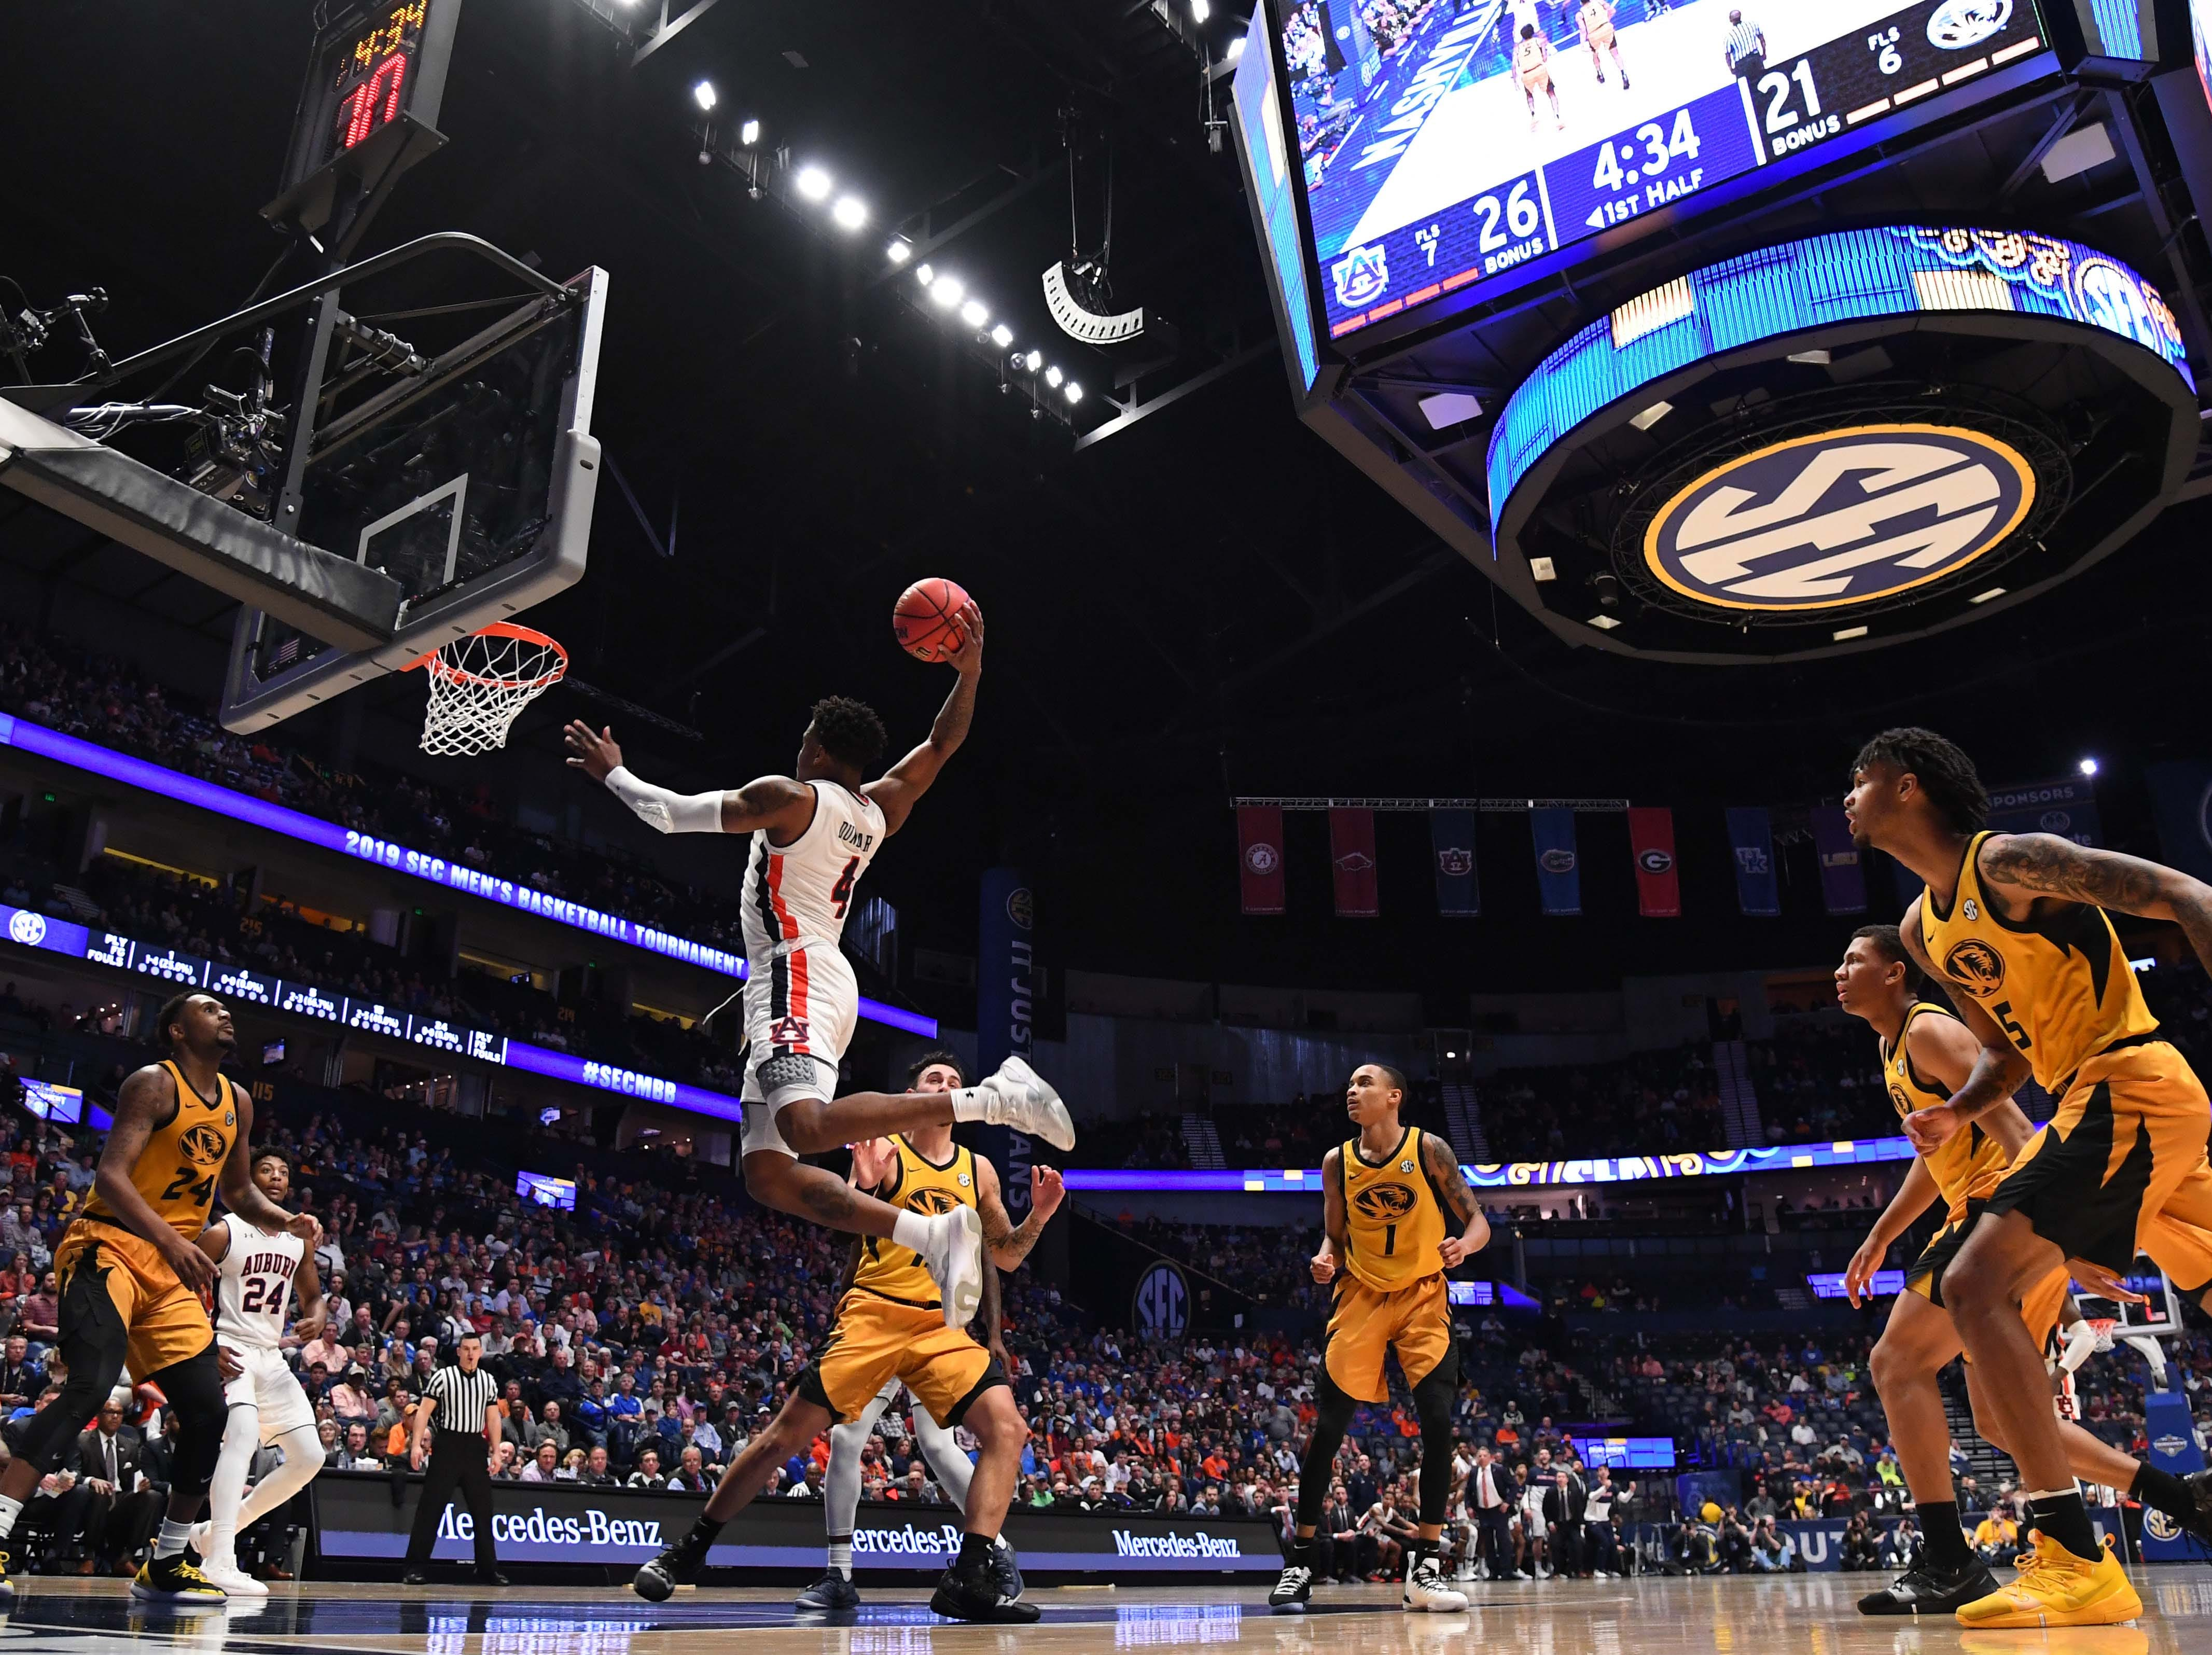 Mar 14, 2019; Nashville, TN, USA; Auburn Tigers guard Malik Dunbar (4) dunks the ball against the Missouri Tigers during the first half of the SEC conference tournament at Bridgestone Arena. Mandatory Credit: Christopher Hanewinckel-USA TODAY Sports